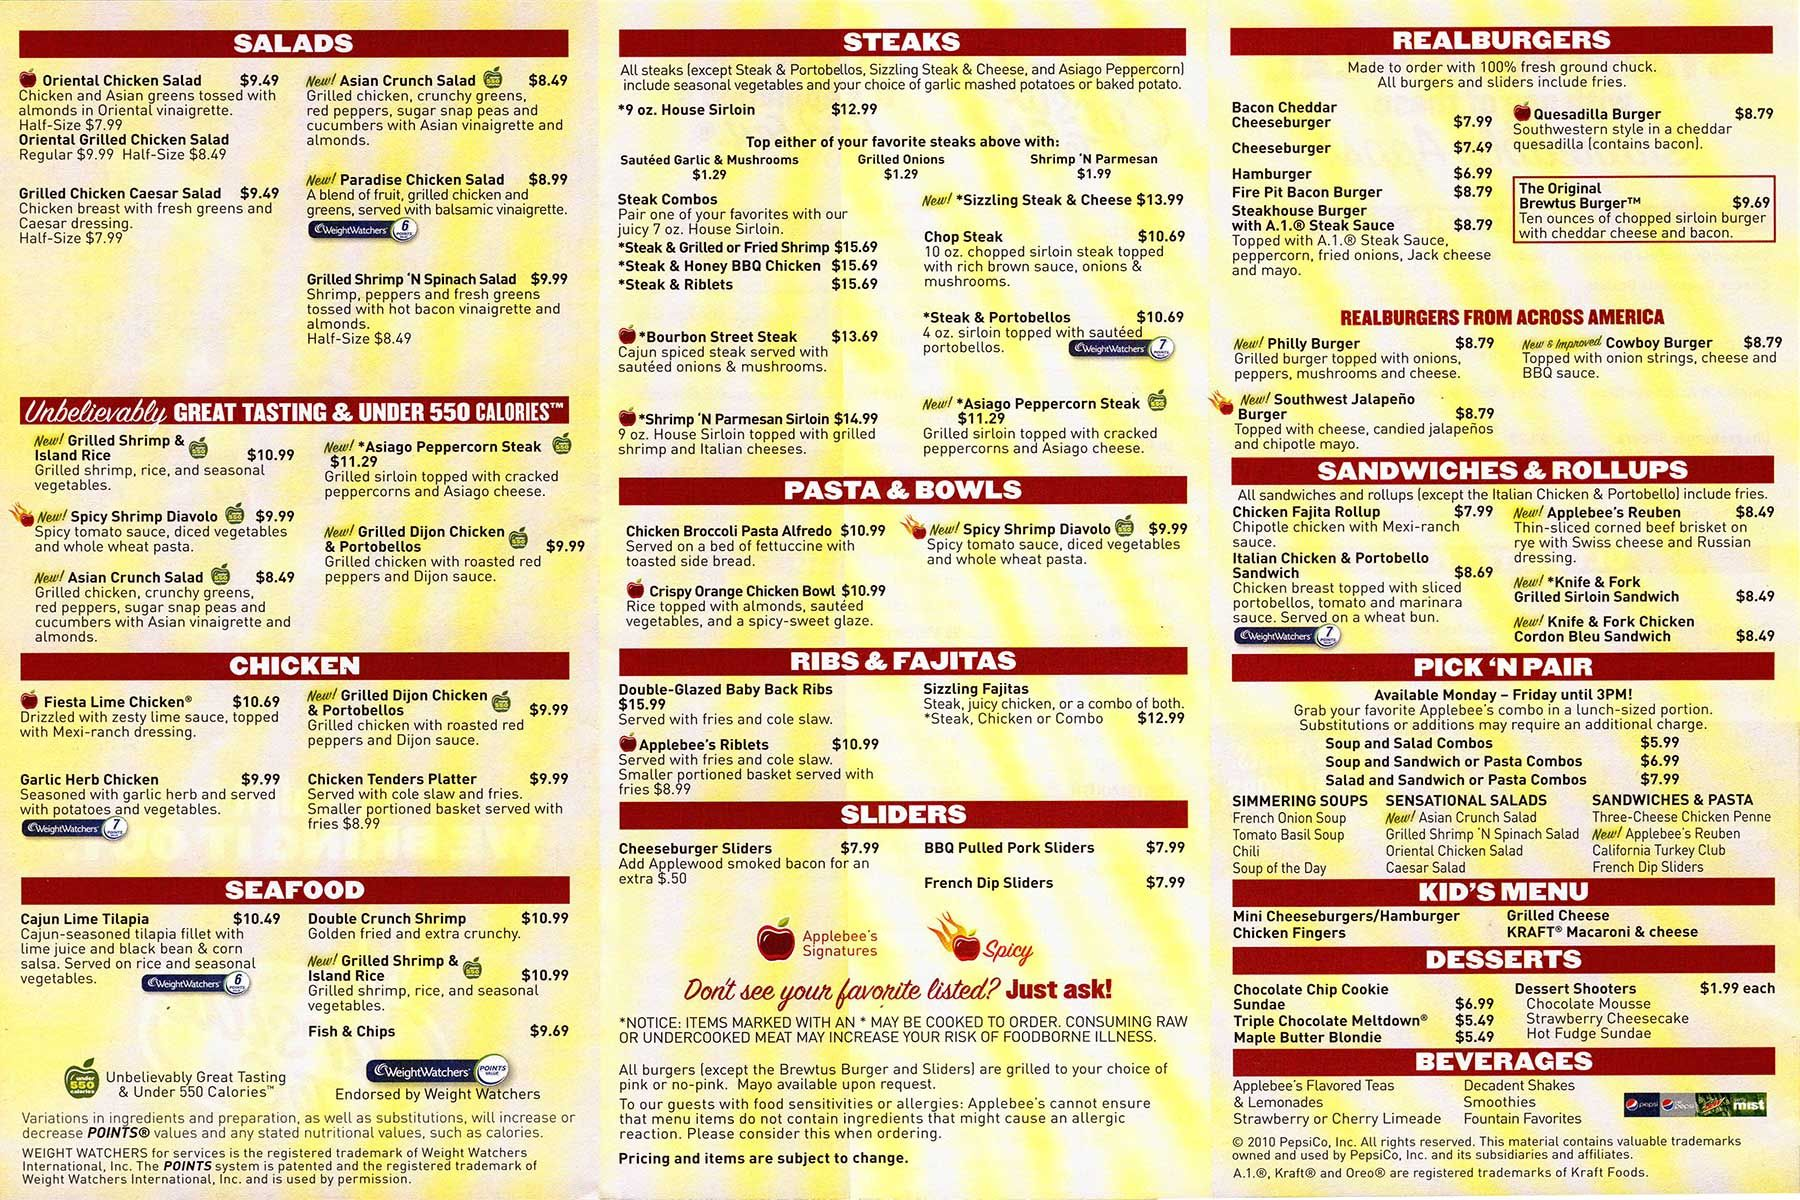 image relating to Applebees Printable Menus referred to as Pin upon Applebees Customer Trip Map Assignment